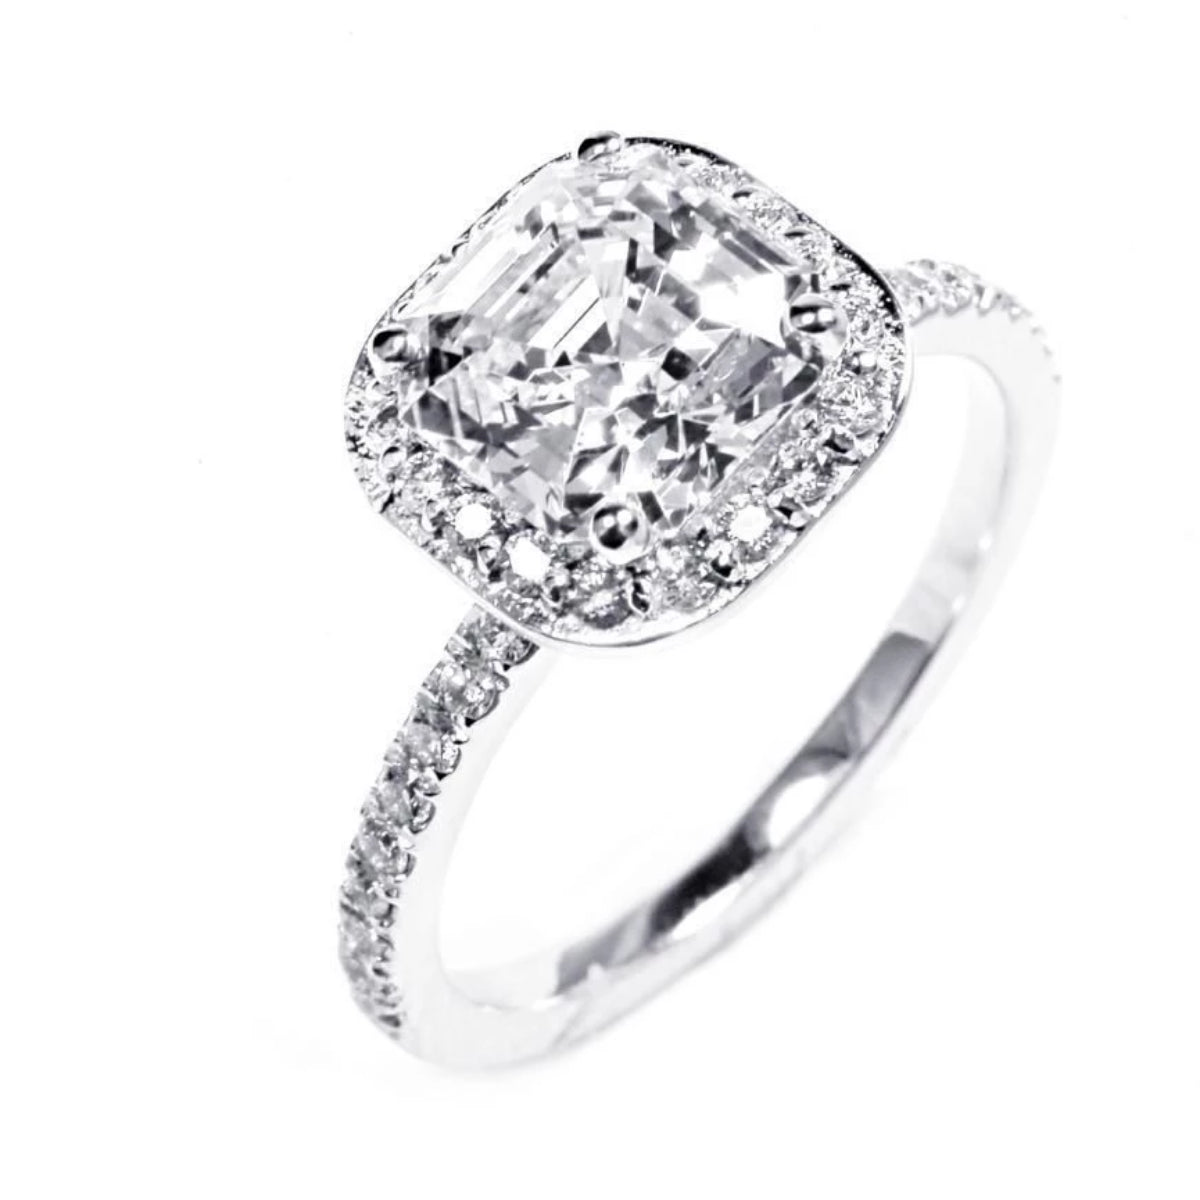 hand diamond ring jewelry a carat size blogs actual stories on erstwhile